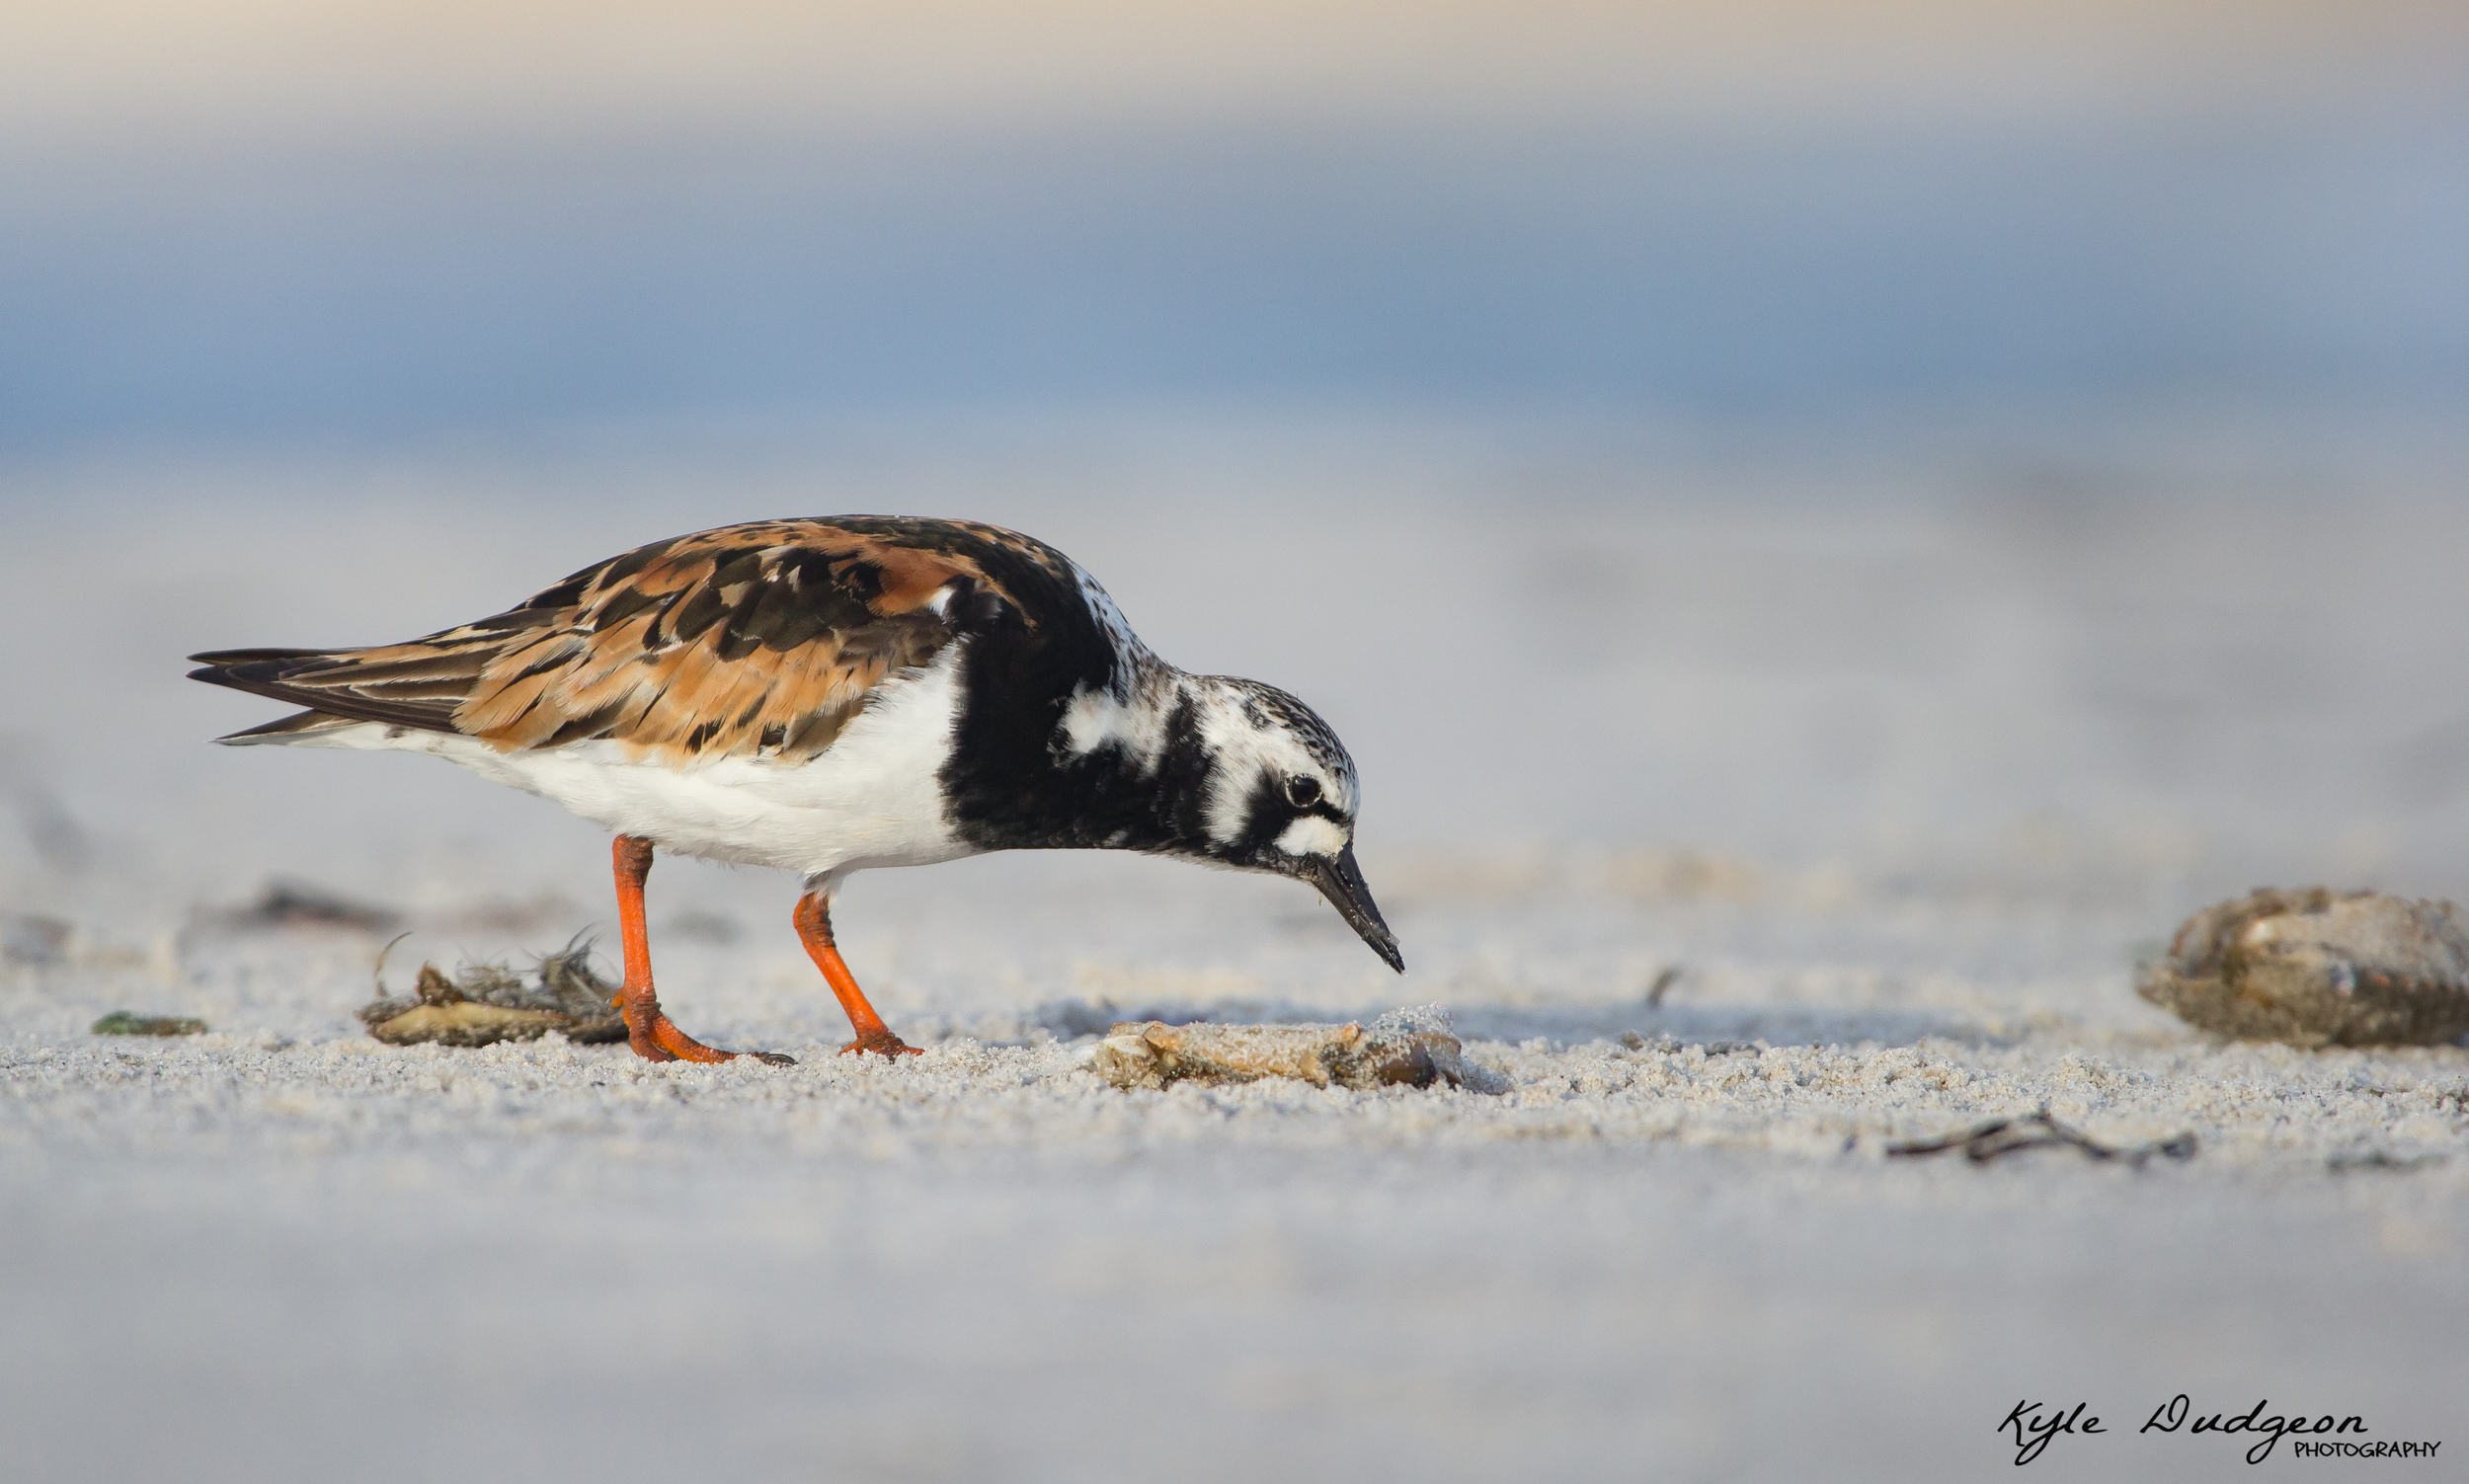 Ruddy turnstone in first light. This was the first shot of the day one morning in Barnegat Light for me, and I really like the way it turned out. 8/4/16.